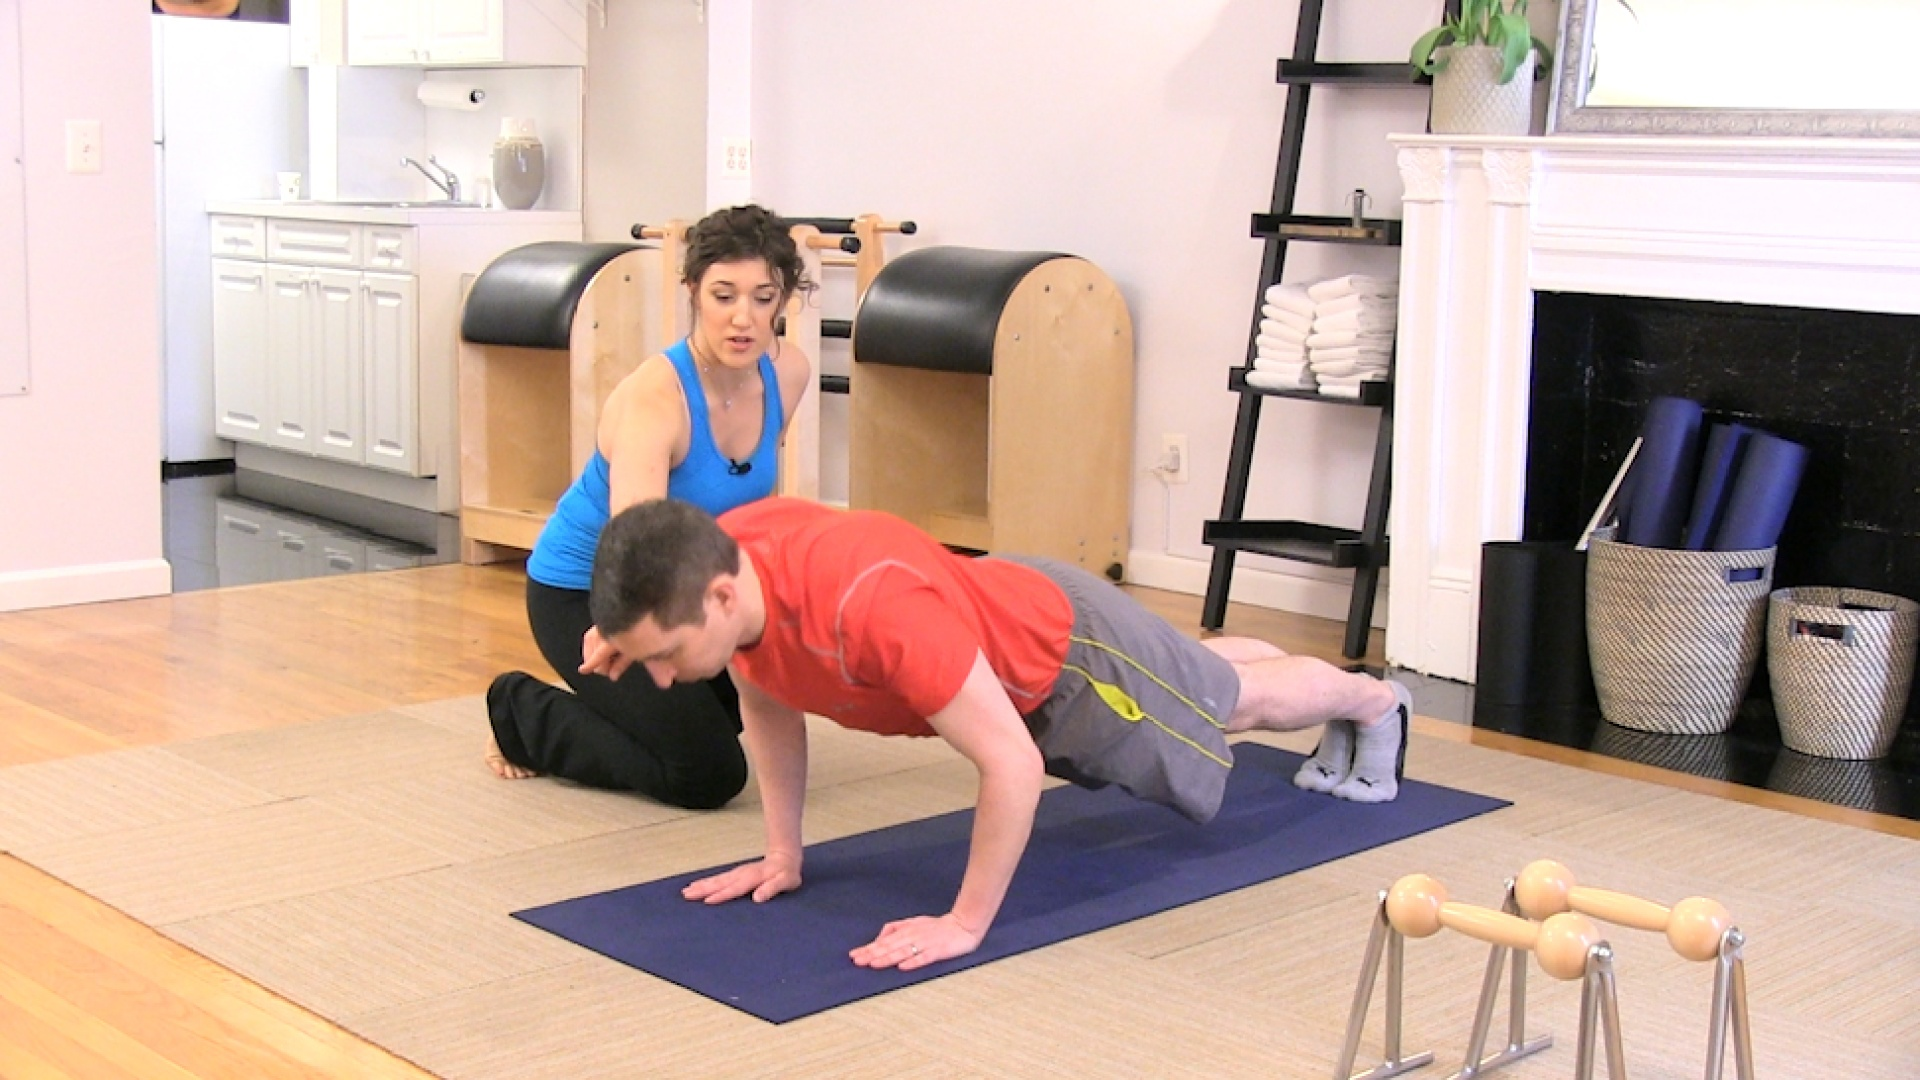 Pilates Plank tips with Victoria Torrie-Capan